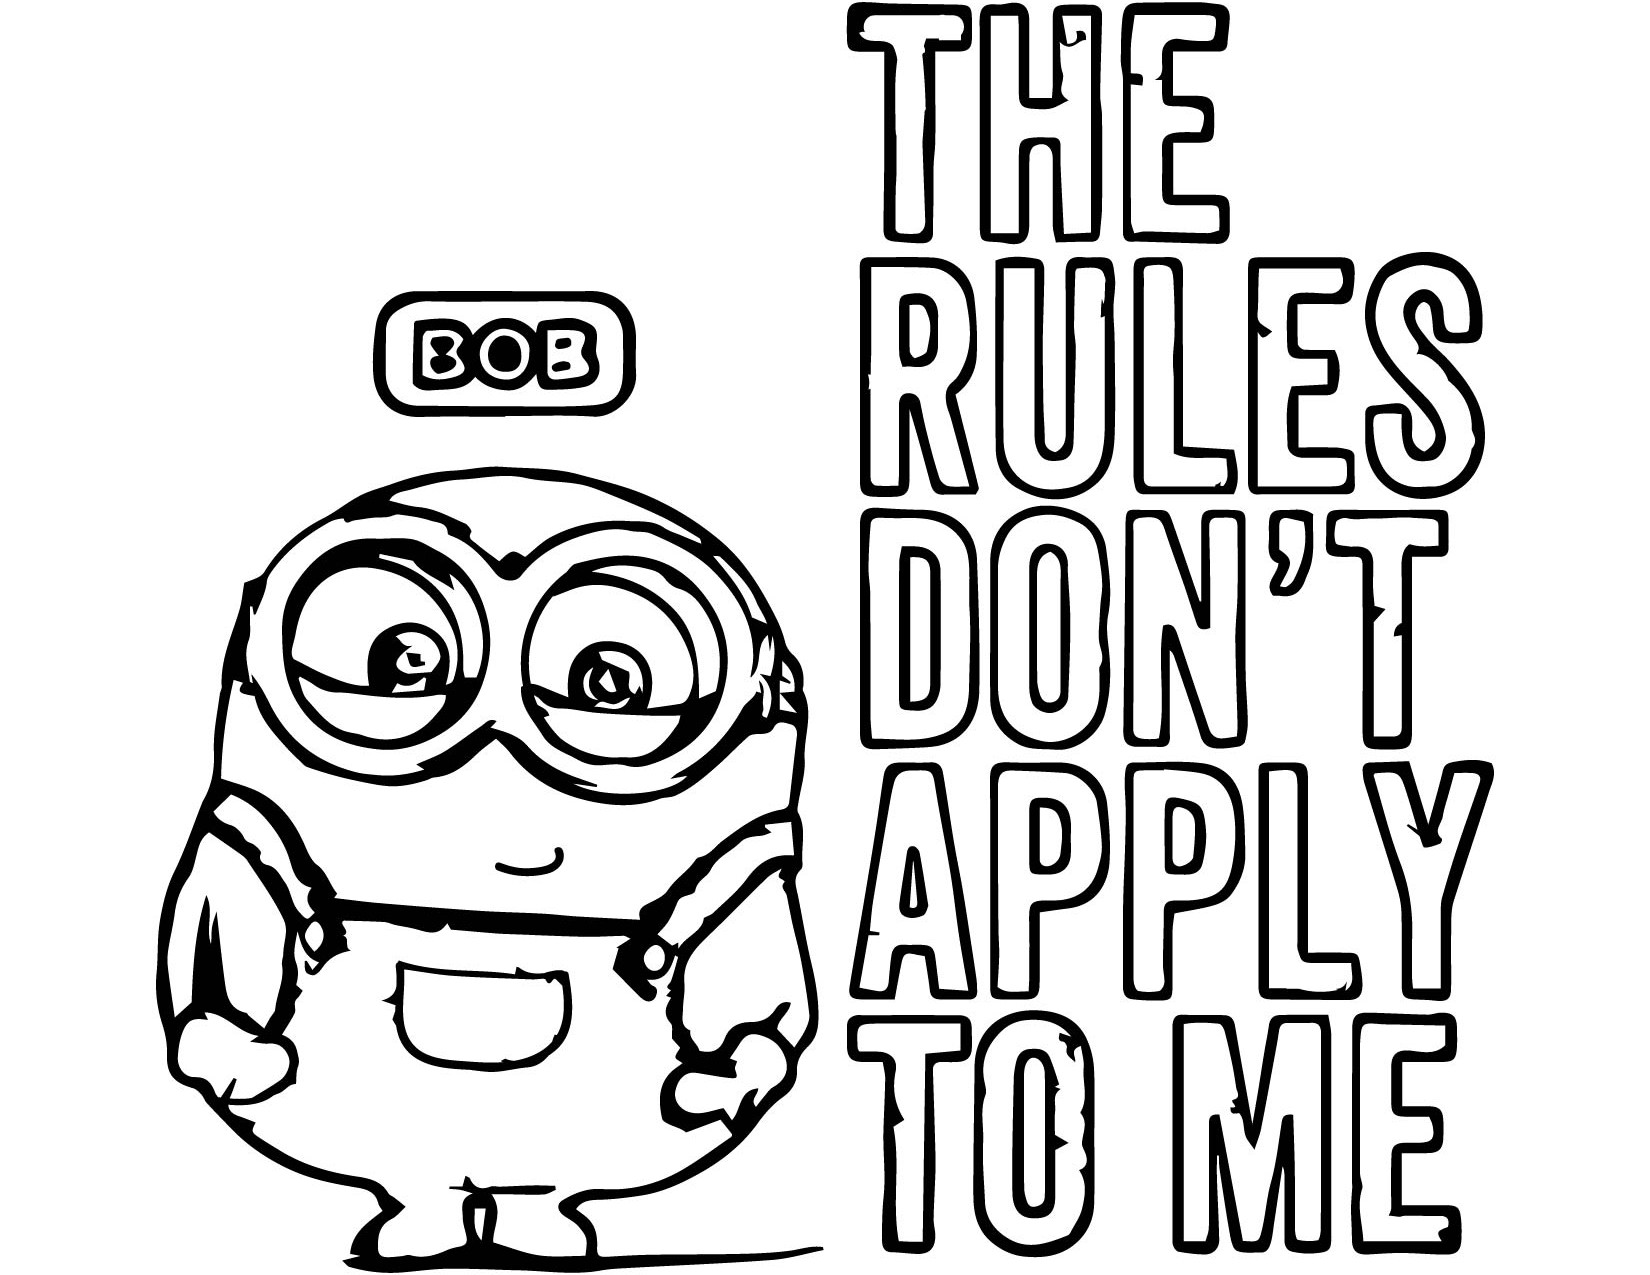 1650x1275 Minion 2015 The Rules Dont Apply To Me Bob Coloring Page